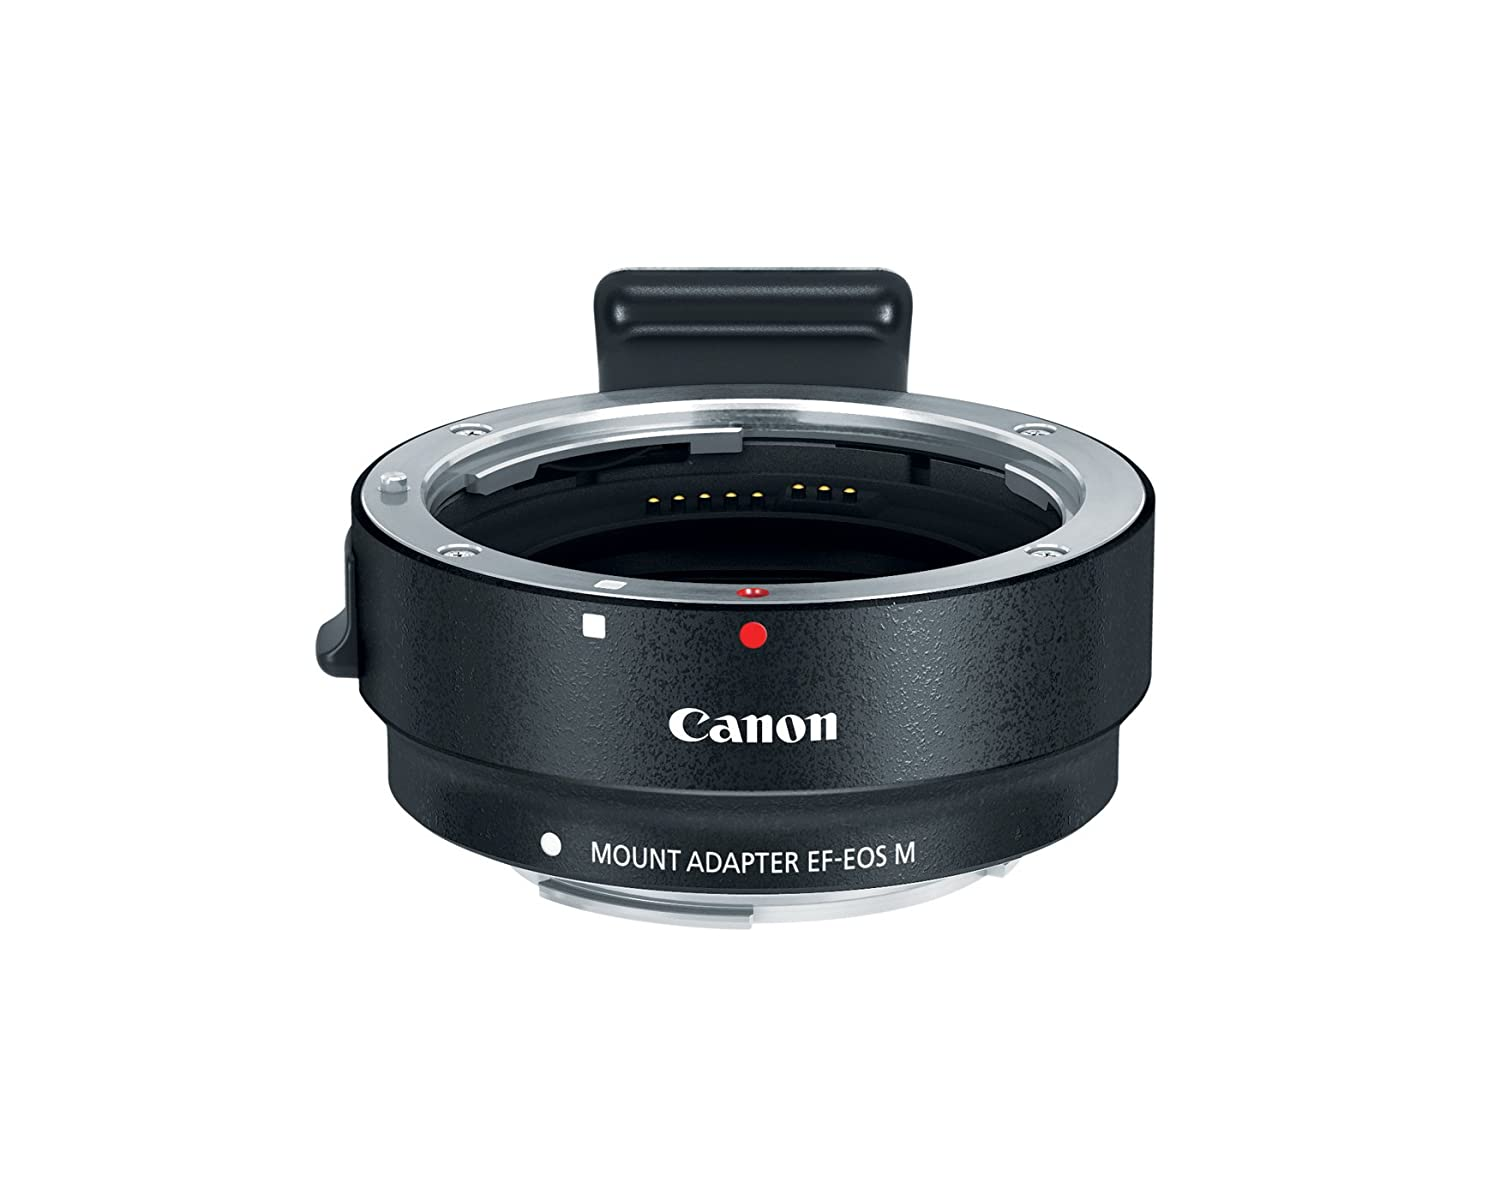 Canon EOS M Mount Adapter $139.00